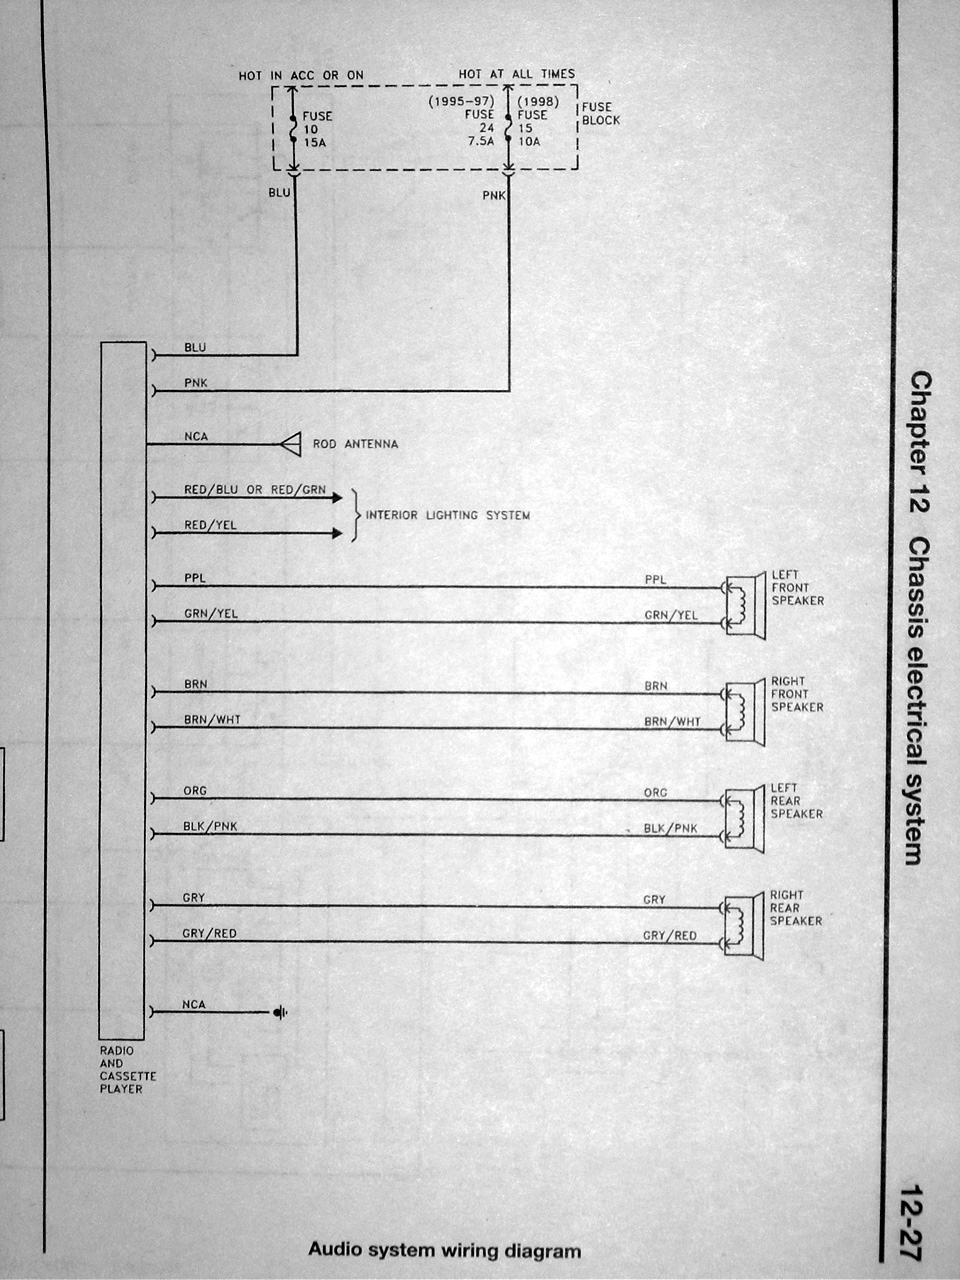 DSC01849 wiring diagram thread *useful info* nissan forum 2003 nissan 350z stereo wiring diagram at nearapp.co